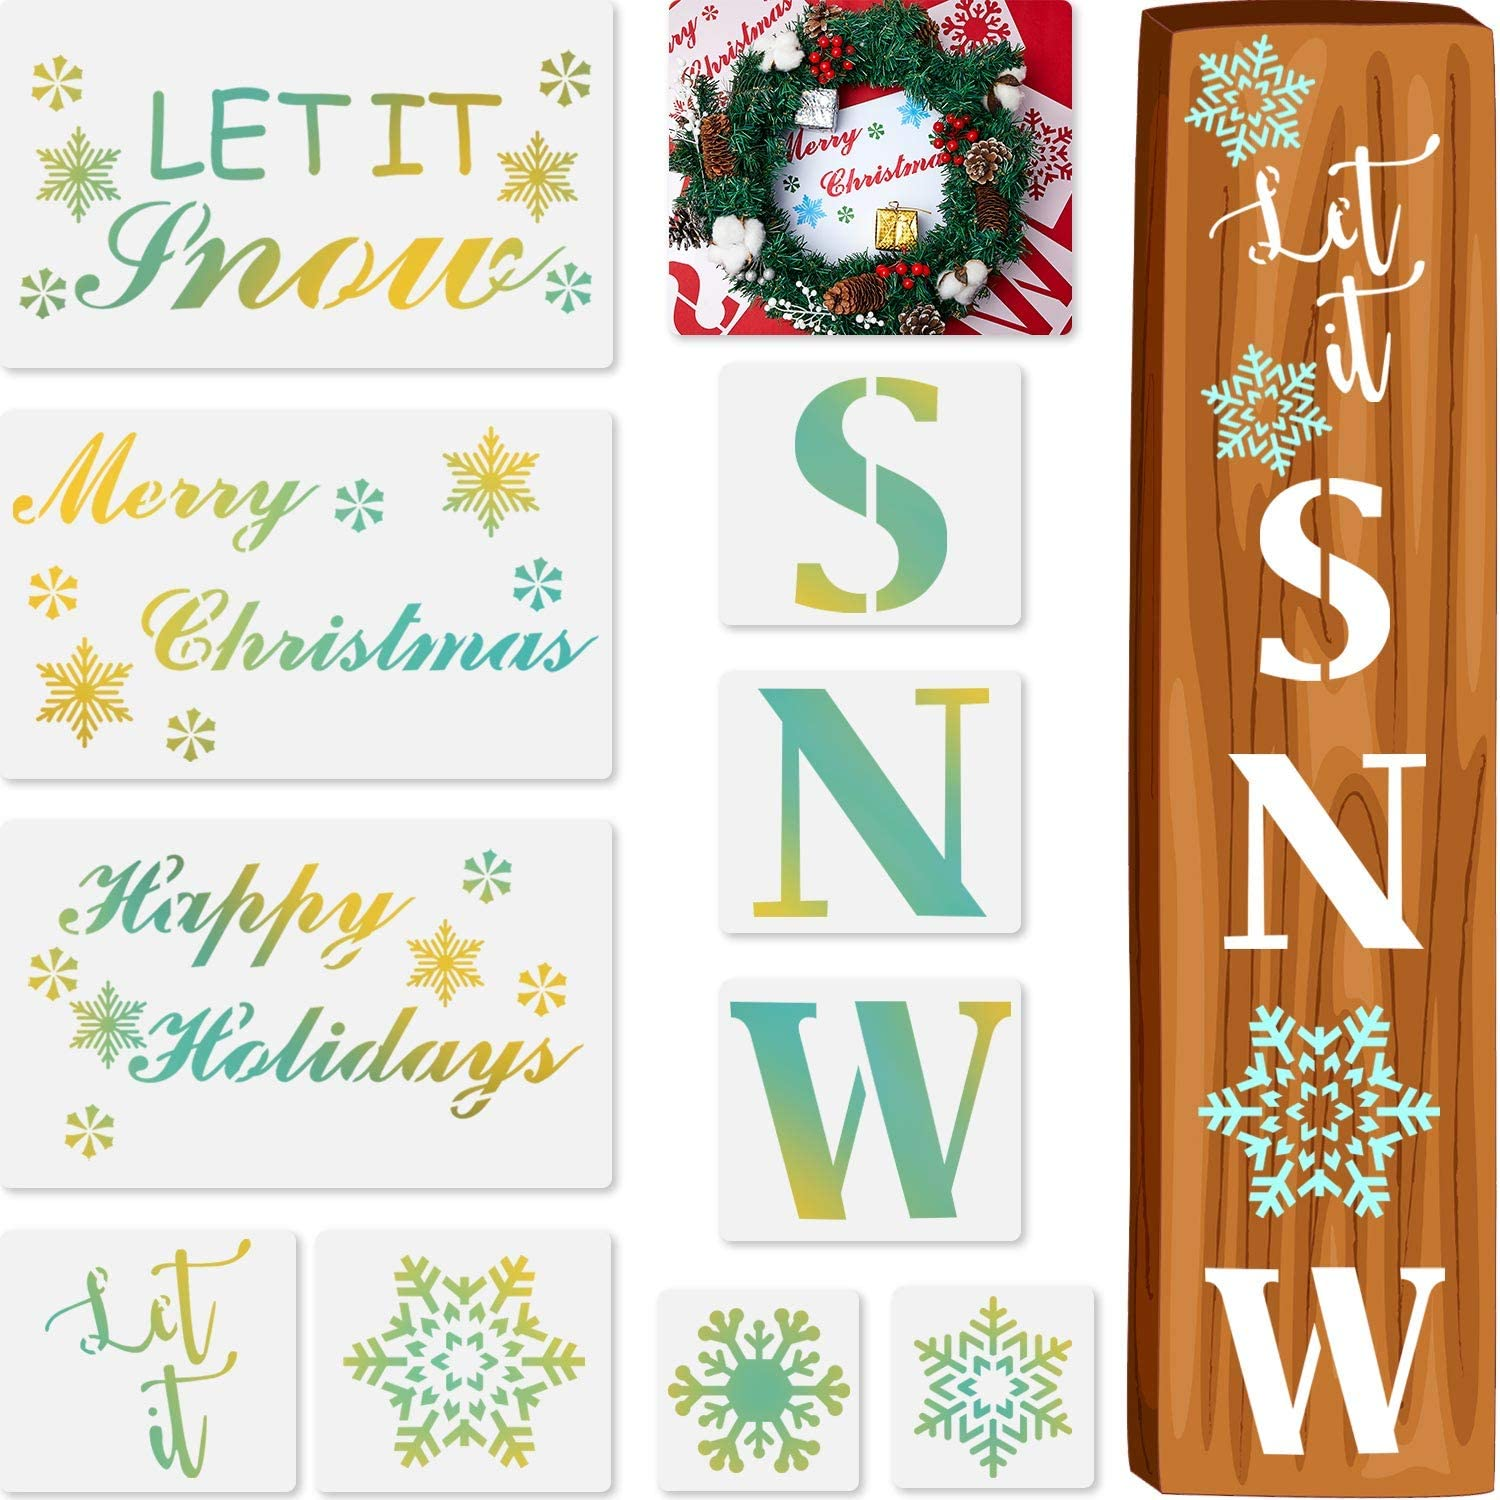 10 Pieces Let It Snow Stencils Christmas Stencils Porch Sign Stencil for Painting on Wood, Reusable Stencils for Winter Home Decor Craft Art